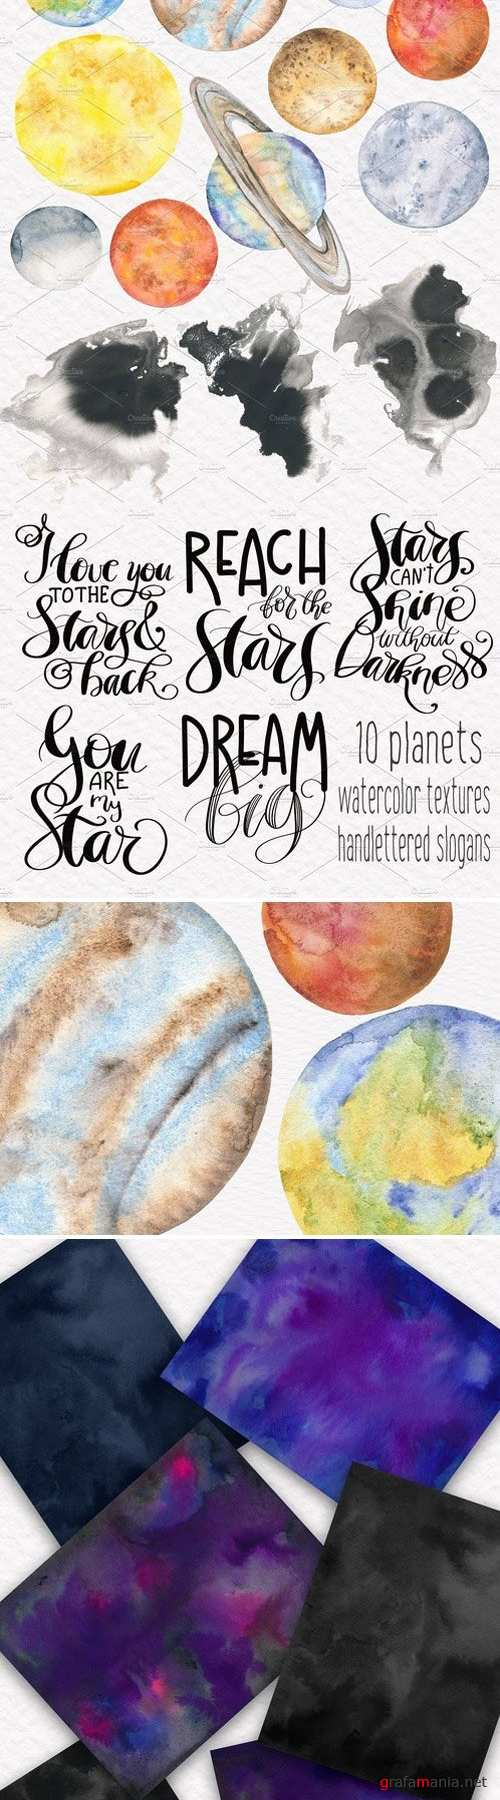 Space Toolkit Watercolor Planets 2354644